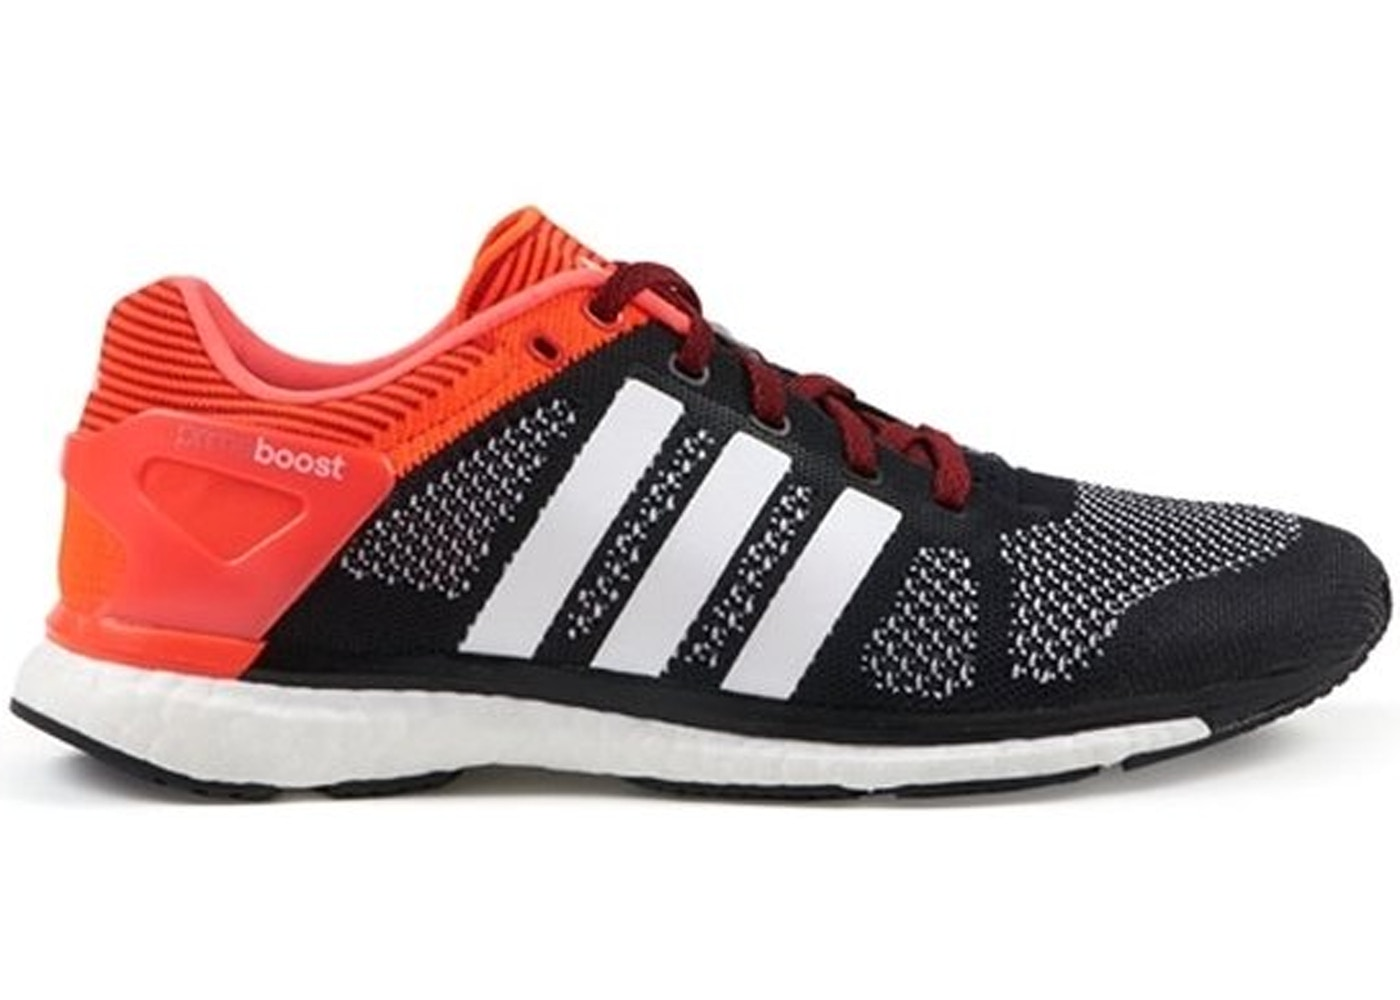 new arrival 14d68 f4eae Sell. or Ask. Size --. View All Bids. adidas adiZero Prime Boost Core Black  Solar Red